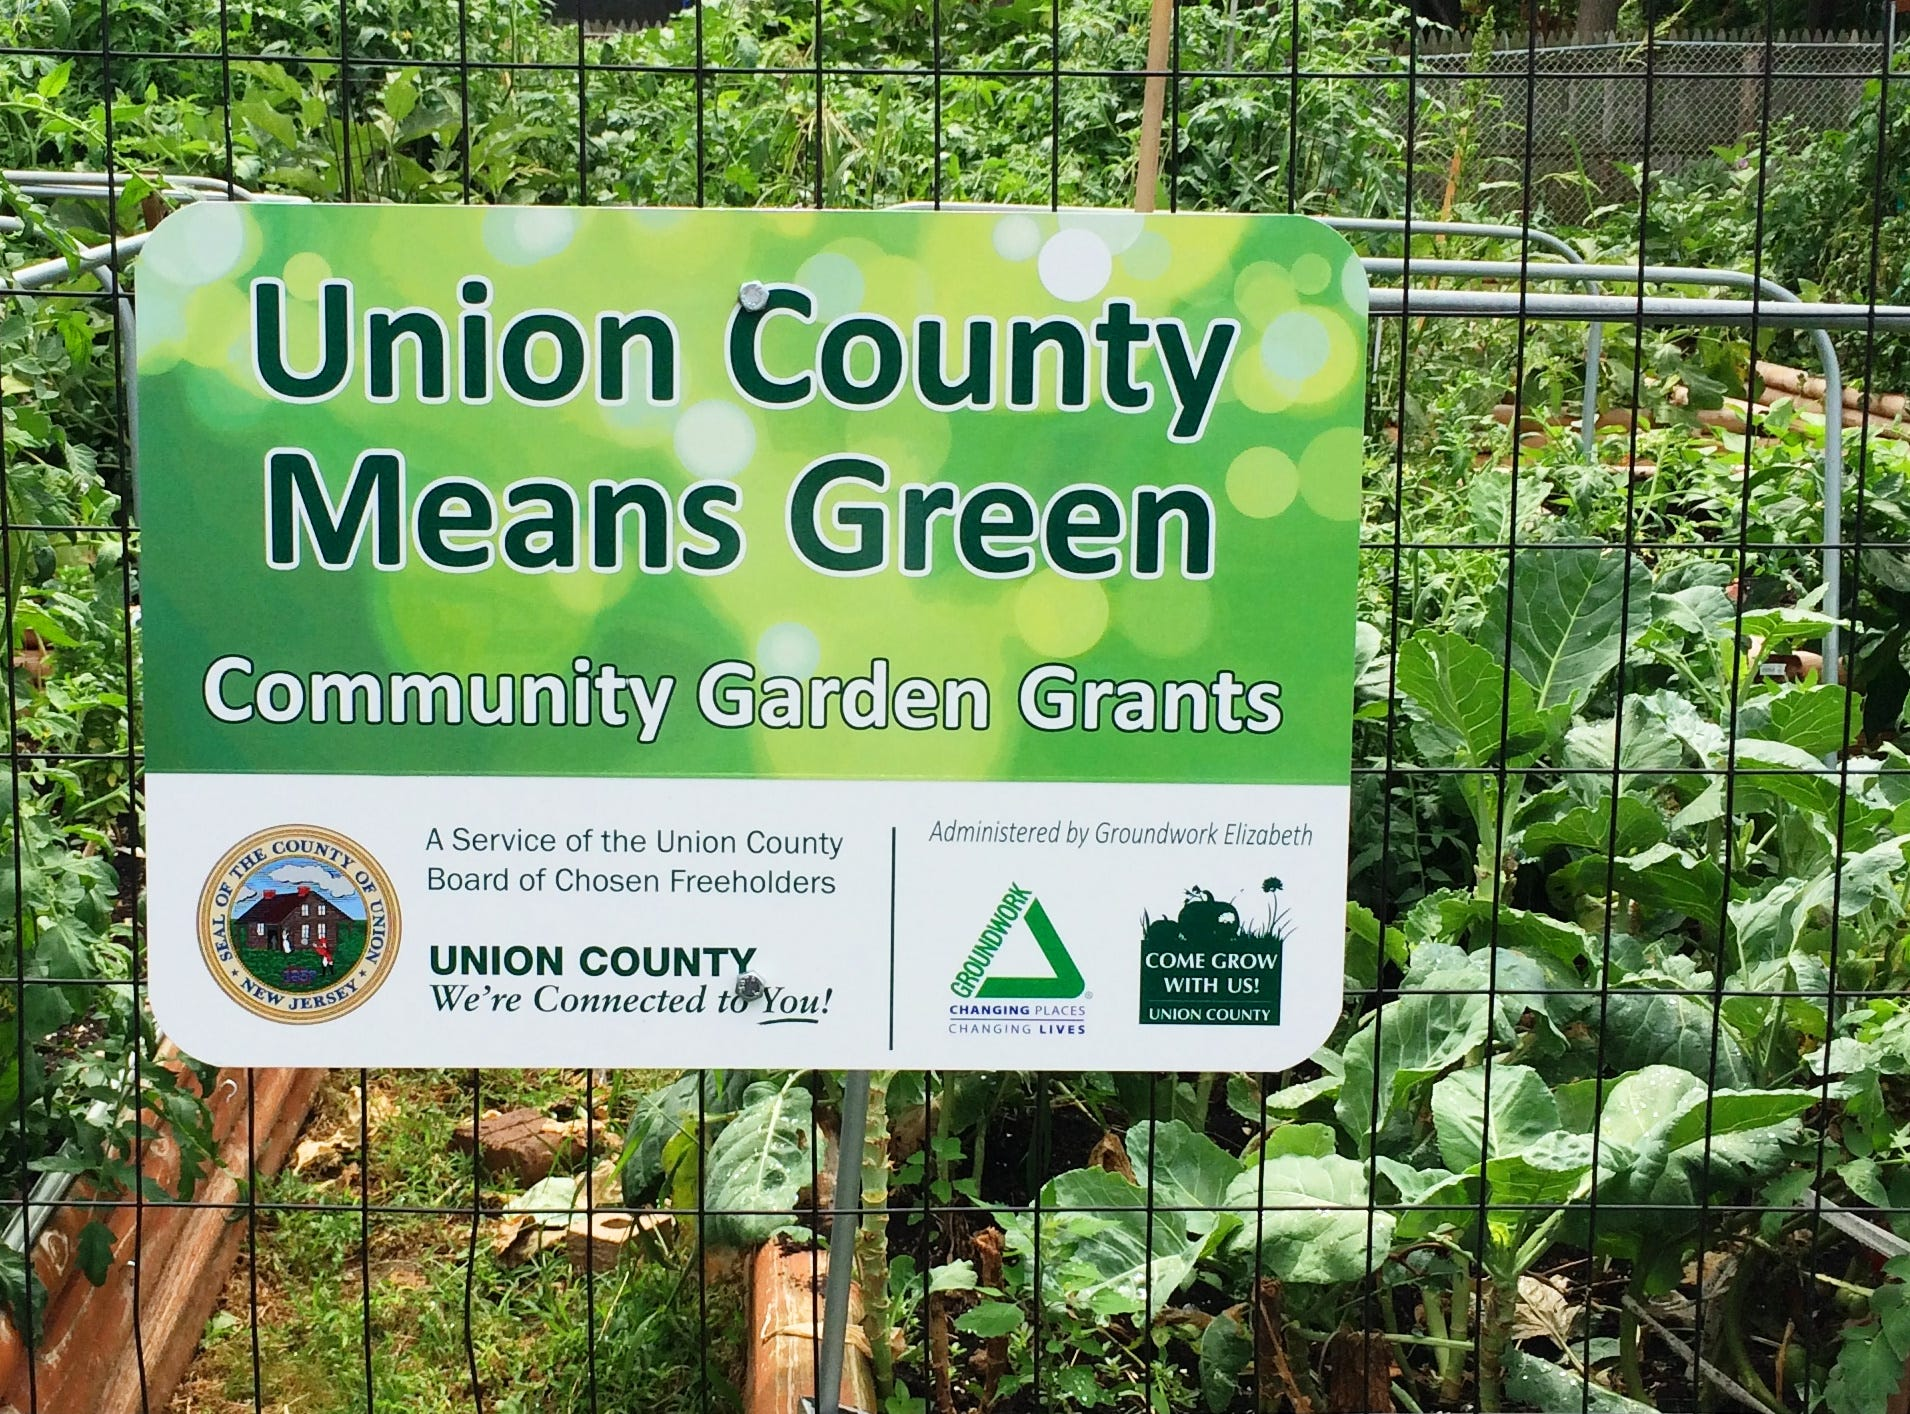 Grants have been awarded to 42 garden projects in 14 municipalities through the Union County Means Green Community Garden Grants program.